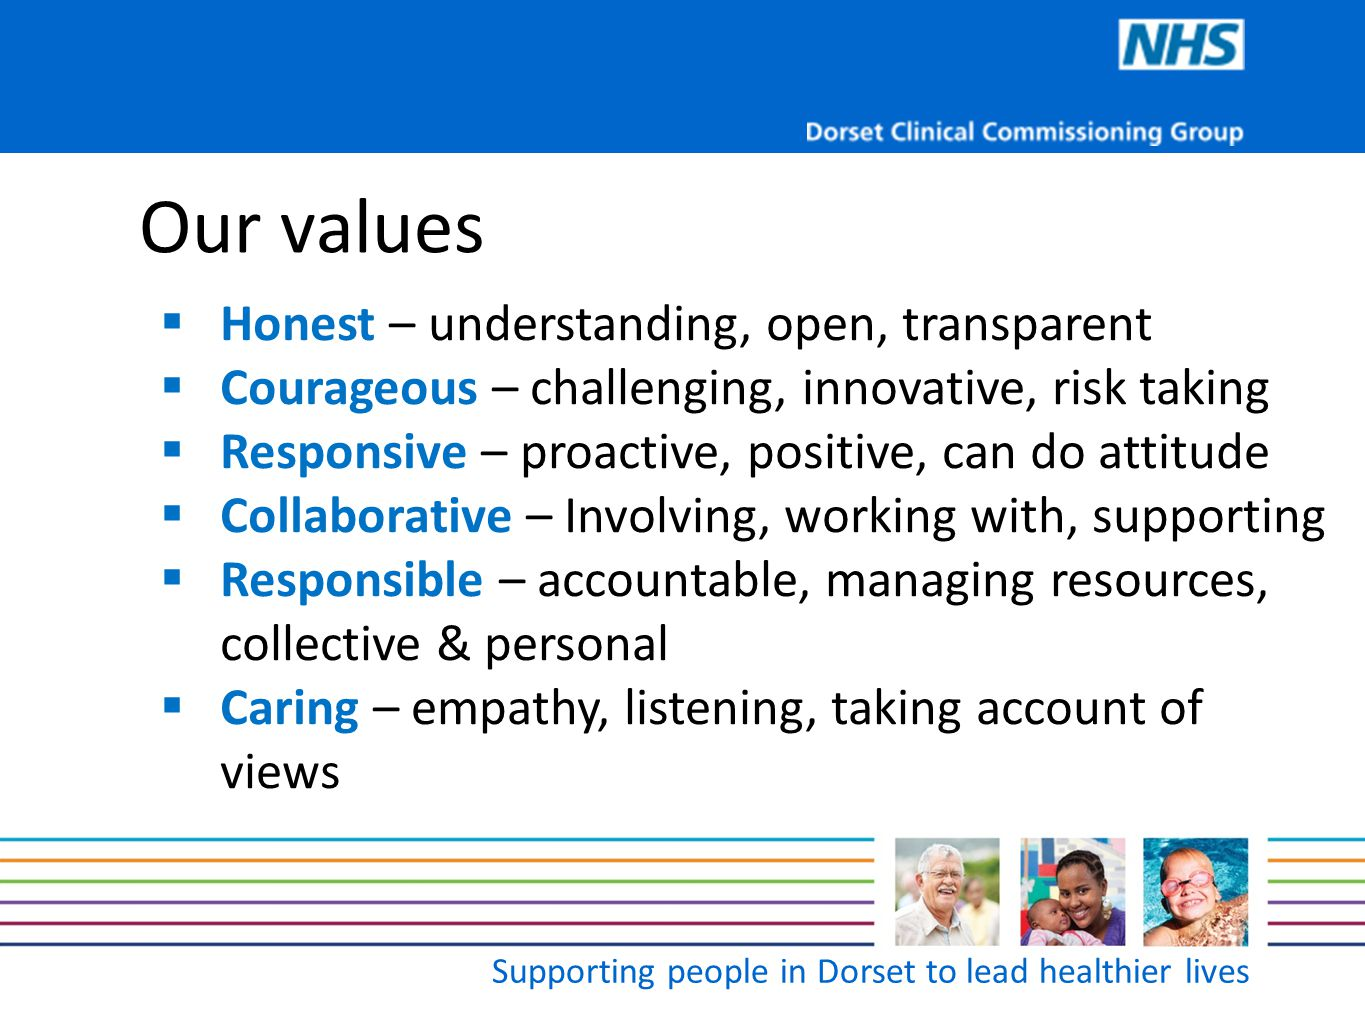 Supporting people in Dorset to lead healthier lives Work to do  Developing the 5 year health strategy  Building on relationships  Embedding mission and values – visible  Developing the governing body  Preparing to take on full role in April 2013